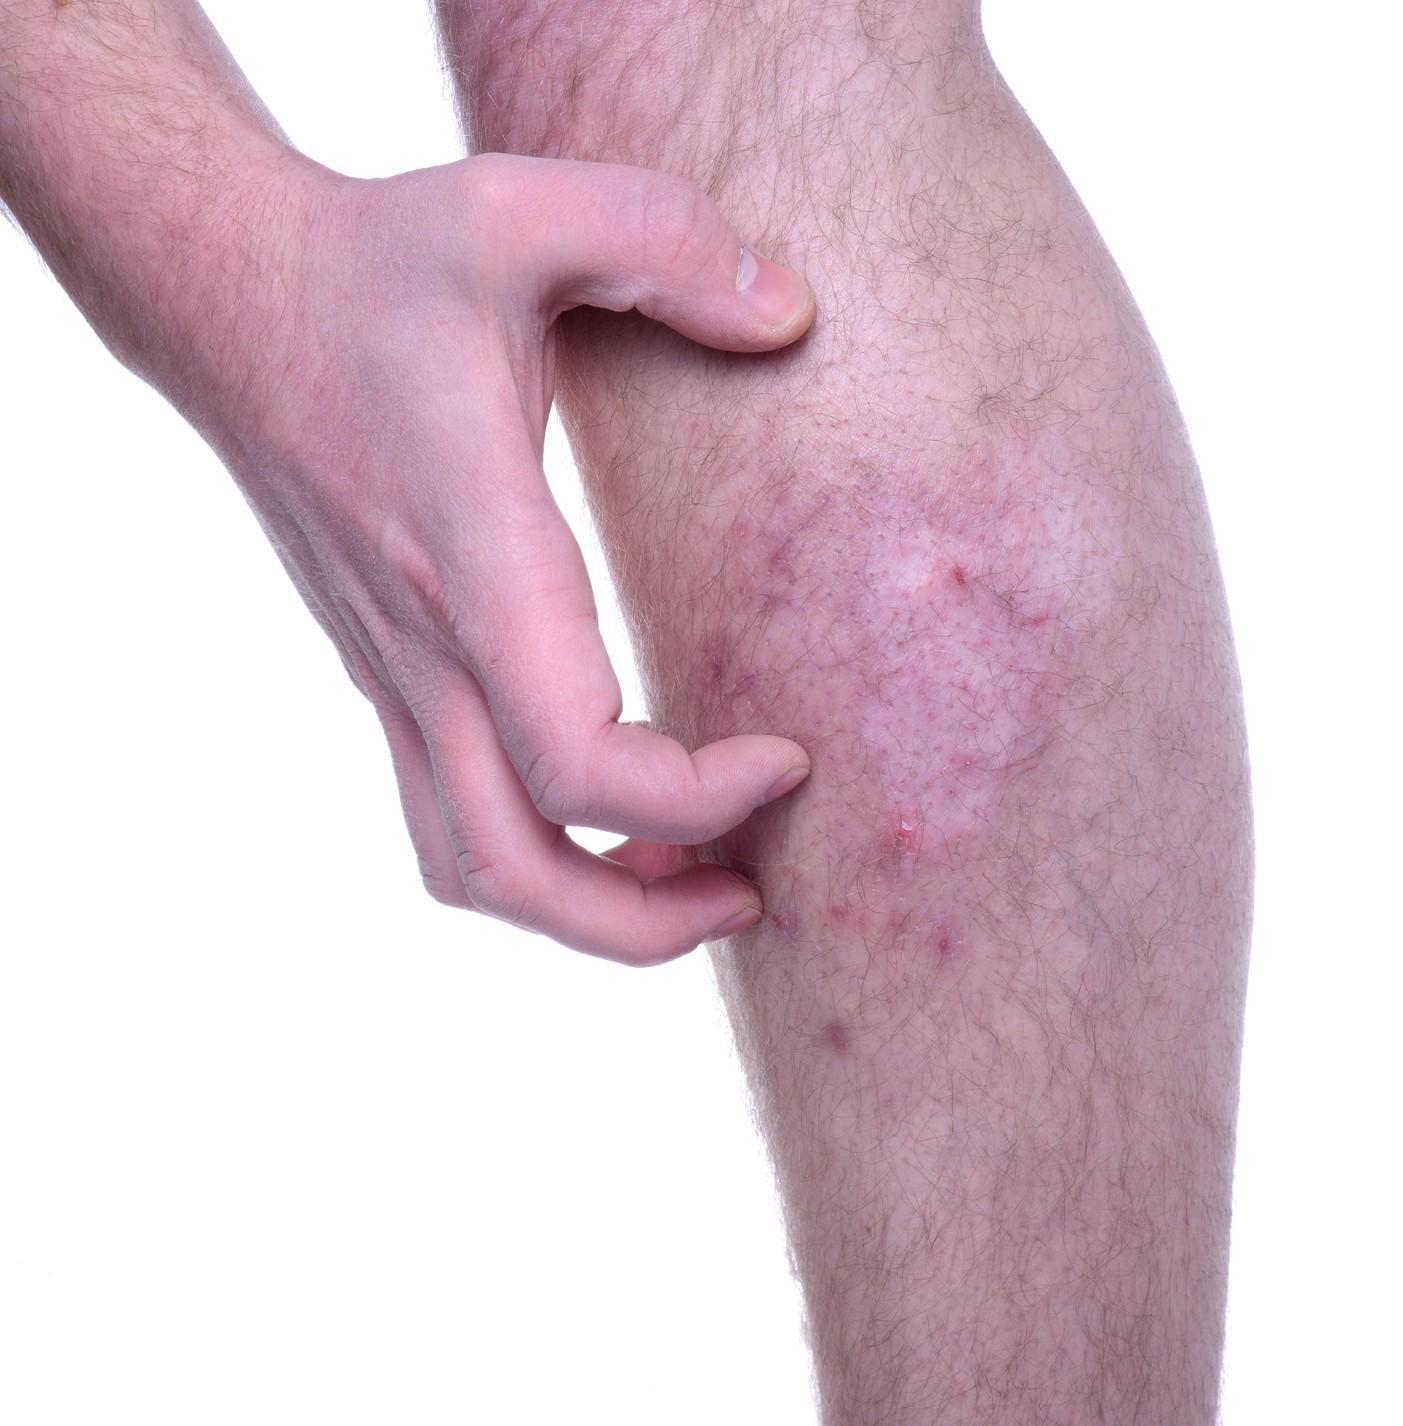 Is Itching Of The Skin A Sign Of Diabetes?